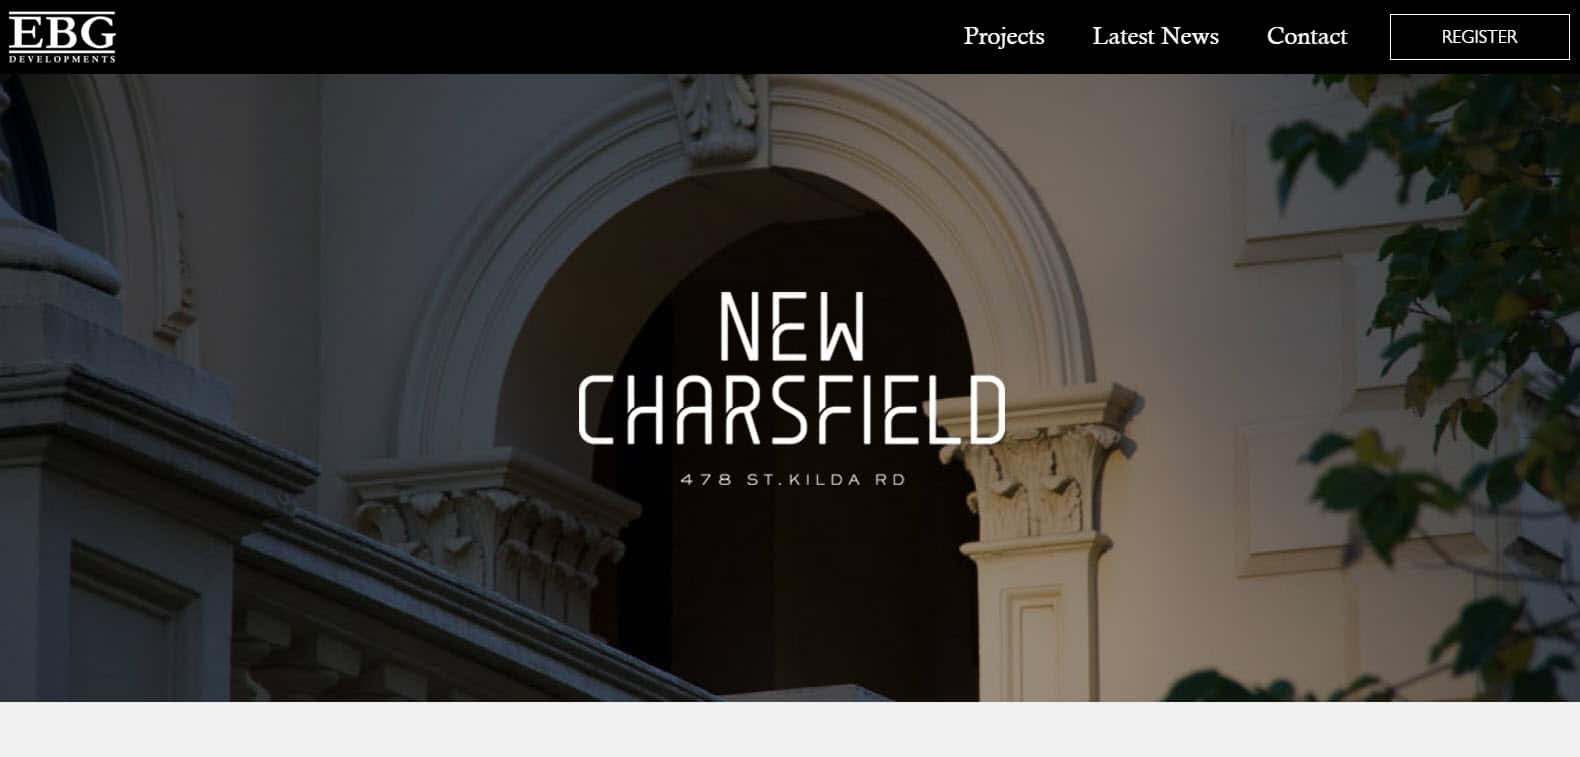 Web Design - EBG New Charsfield